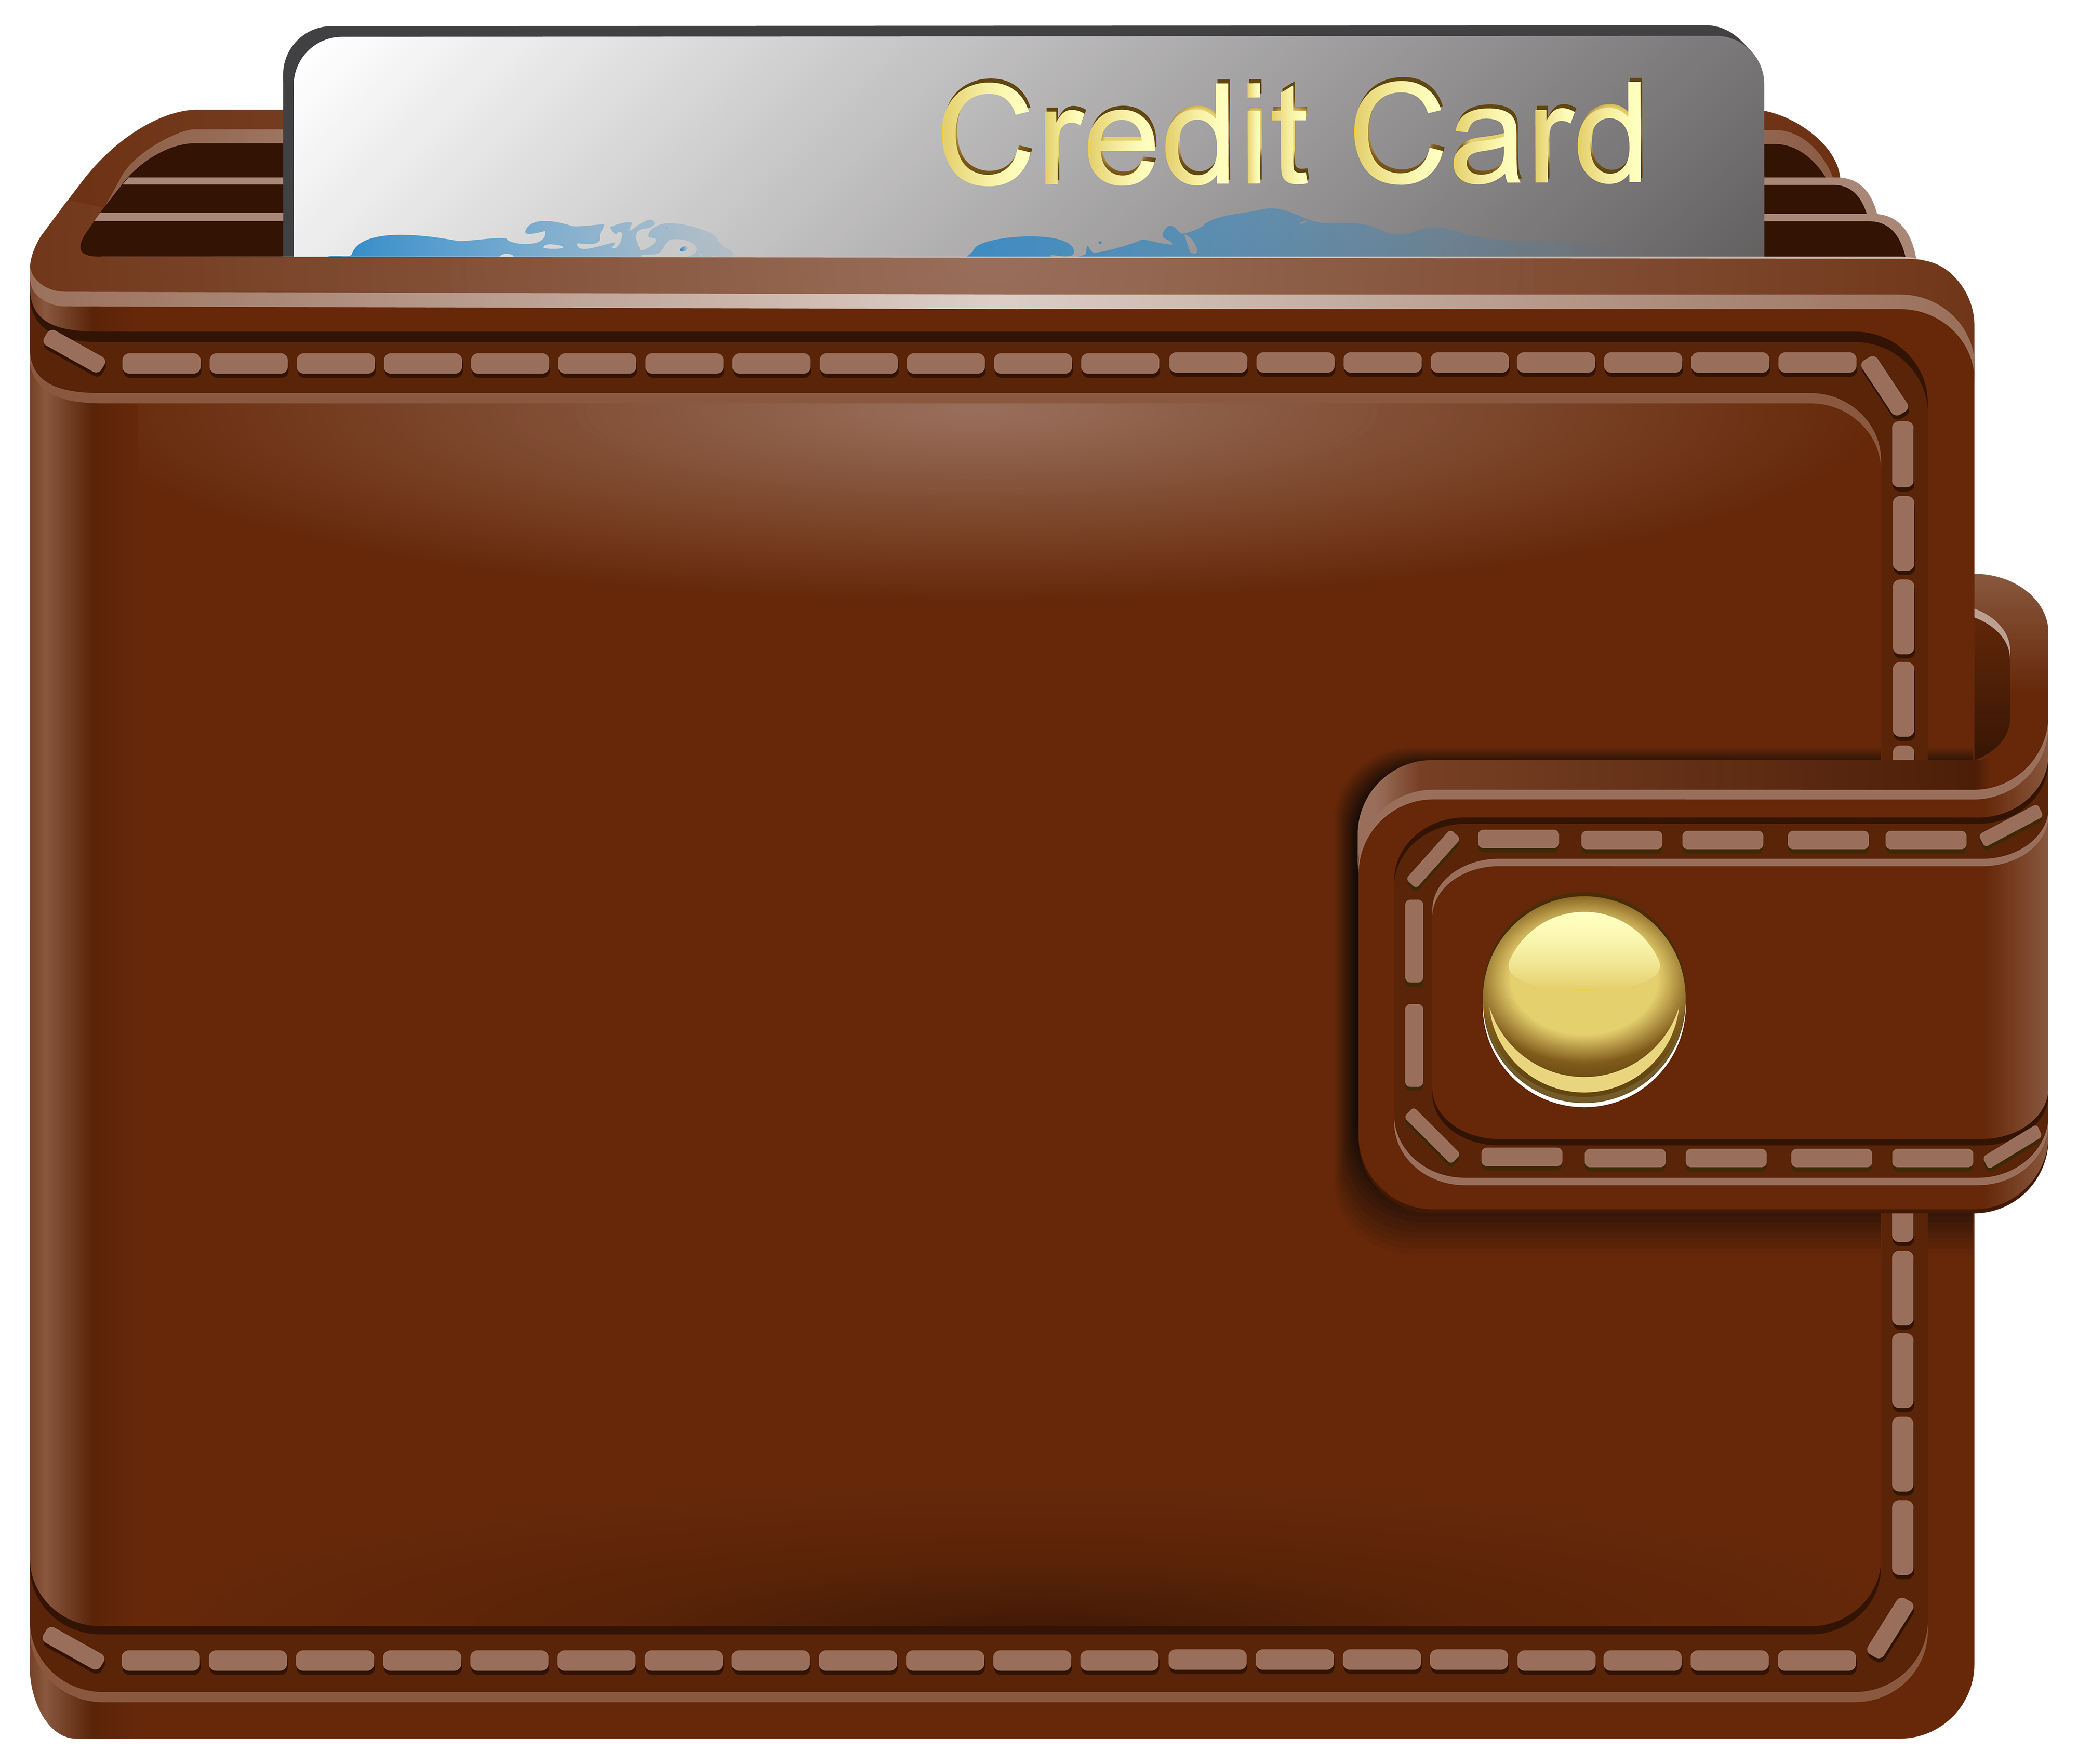 Wallet images clipart picture free download Wallet with Credit Card PNG Clipart - Best WEB Clipart picture free download